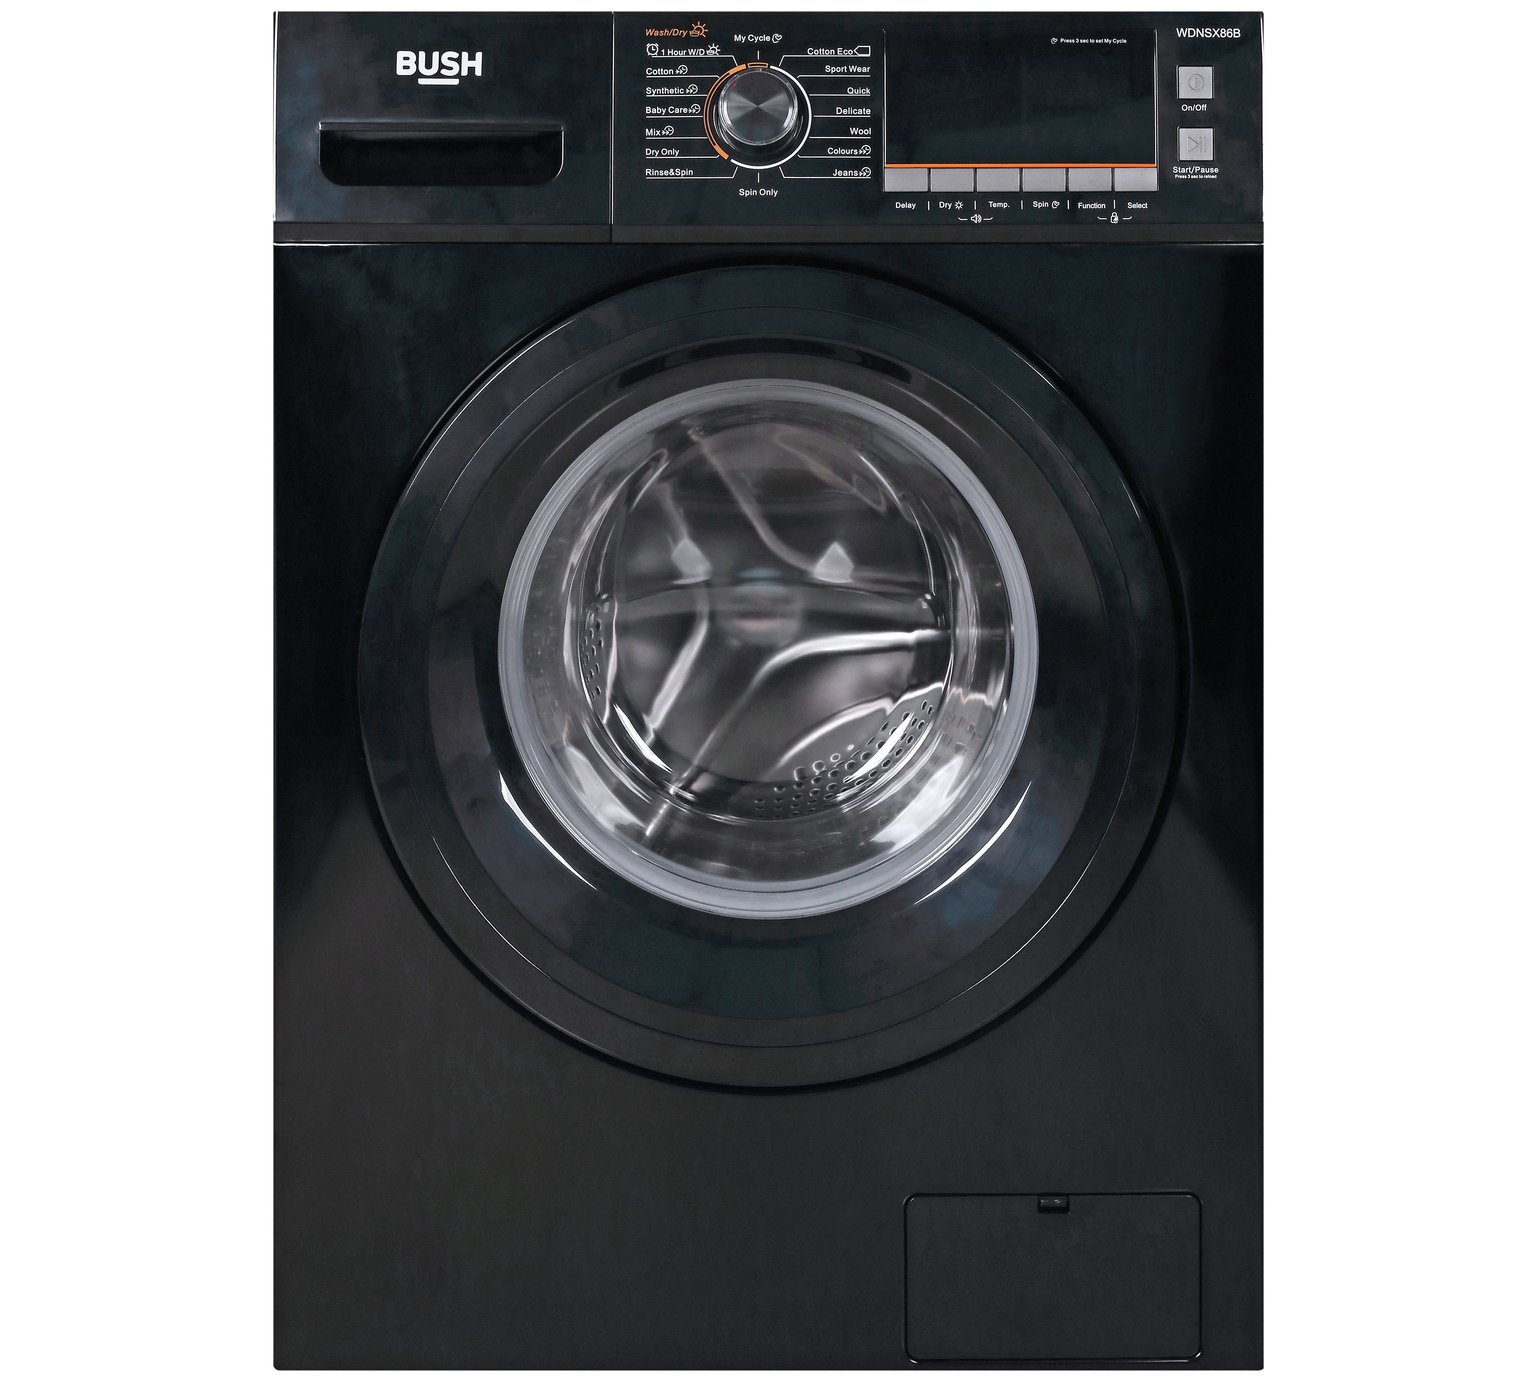 Bush WDNSX86B 8KG / 6KG 1400 Spin Washer Dryer - Black by Bush 557/2595